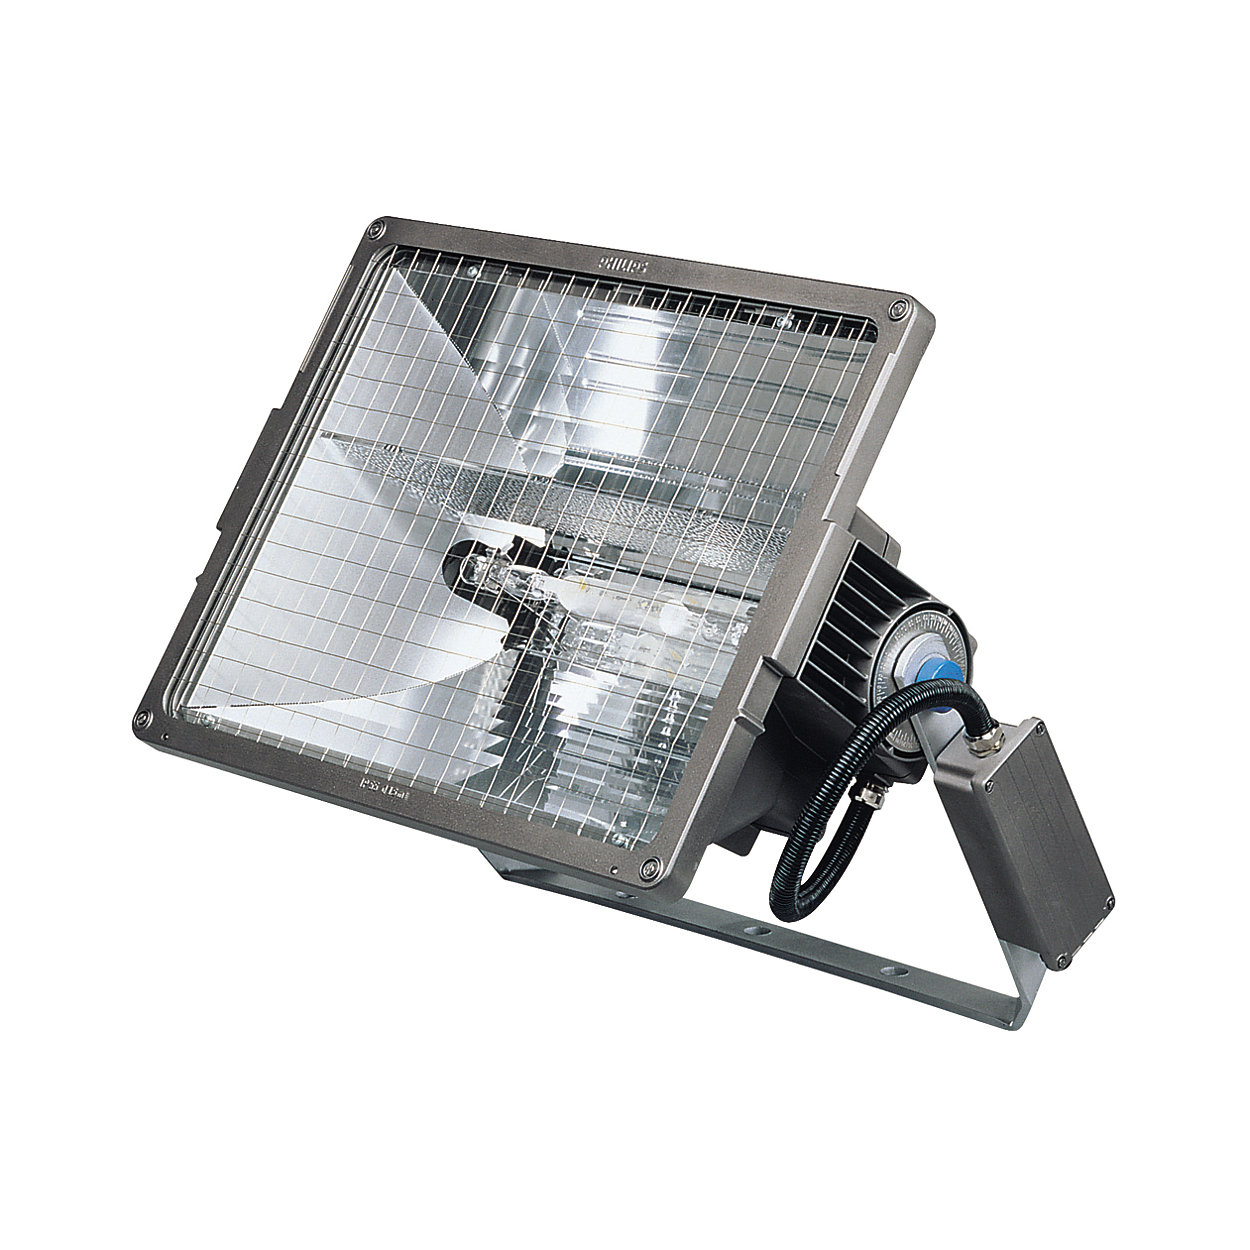 PowerVision – high-performance floodlighting